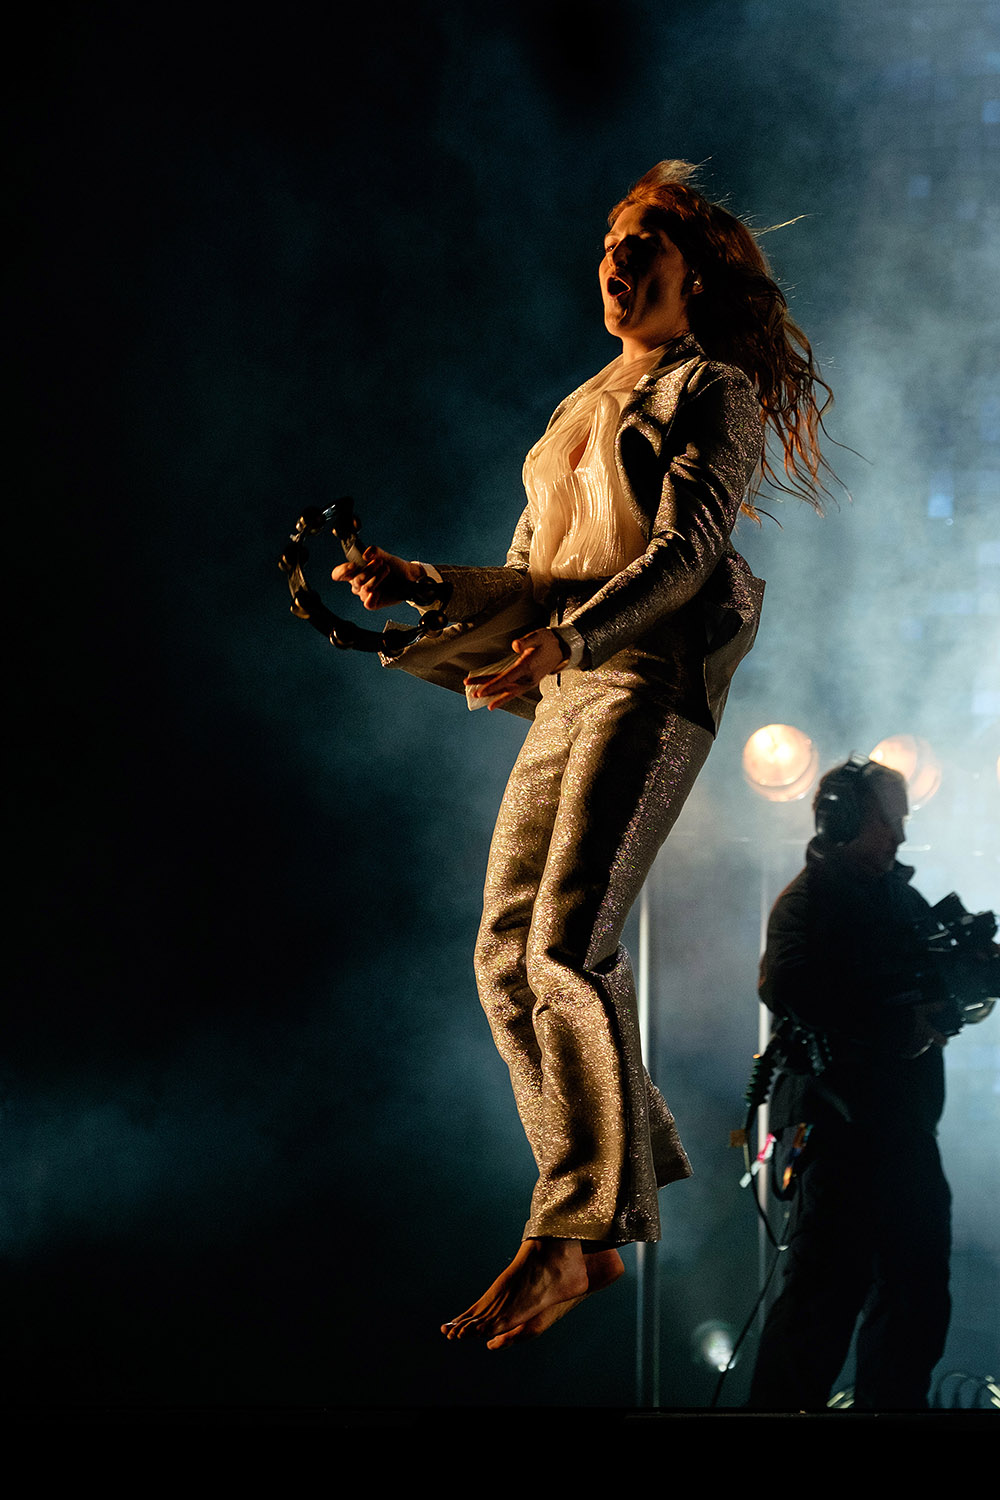 Florence and the Machine performs on the Pyramid stage at Glastonbury Festival 2015, on Worthy Farm, Somerset. Florence was moved up the running order due to the Foo Fighters having to drop out. June 26 2015.